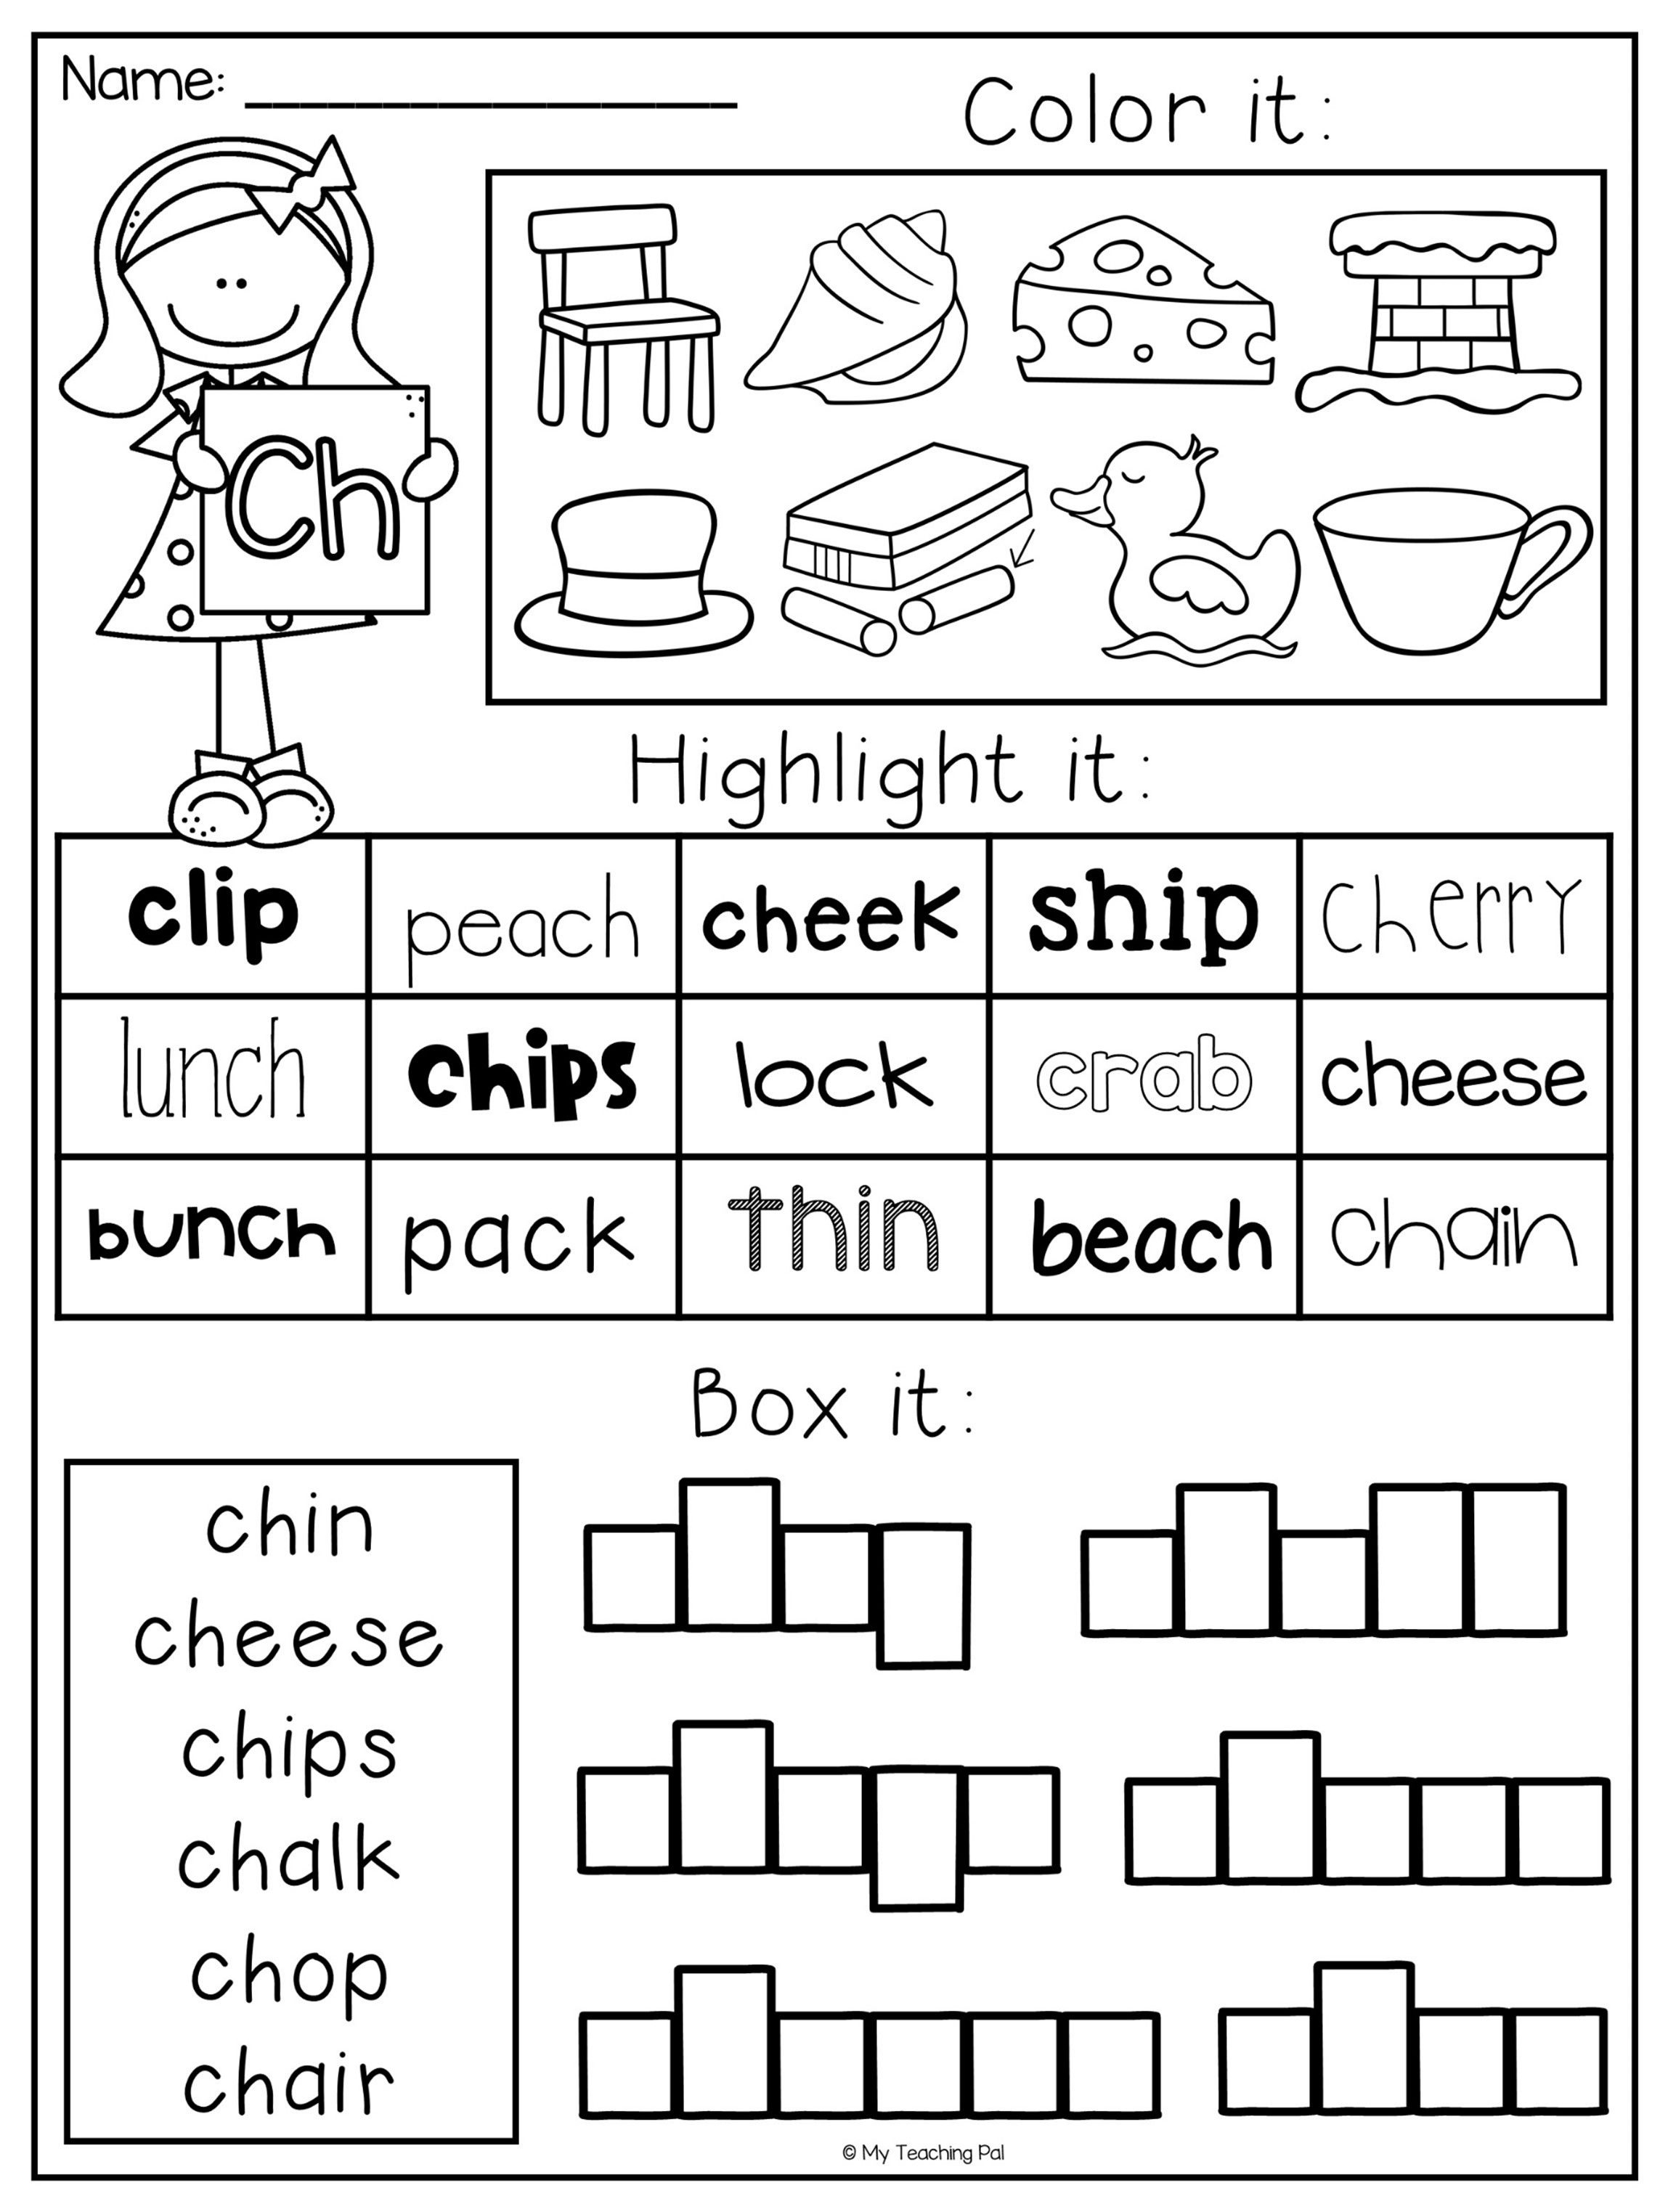 Digraph Worksheet Packet - Ch, Sh, Th, Wh, Ph | Educational | Printable Ch Worksheets